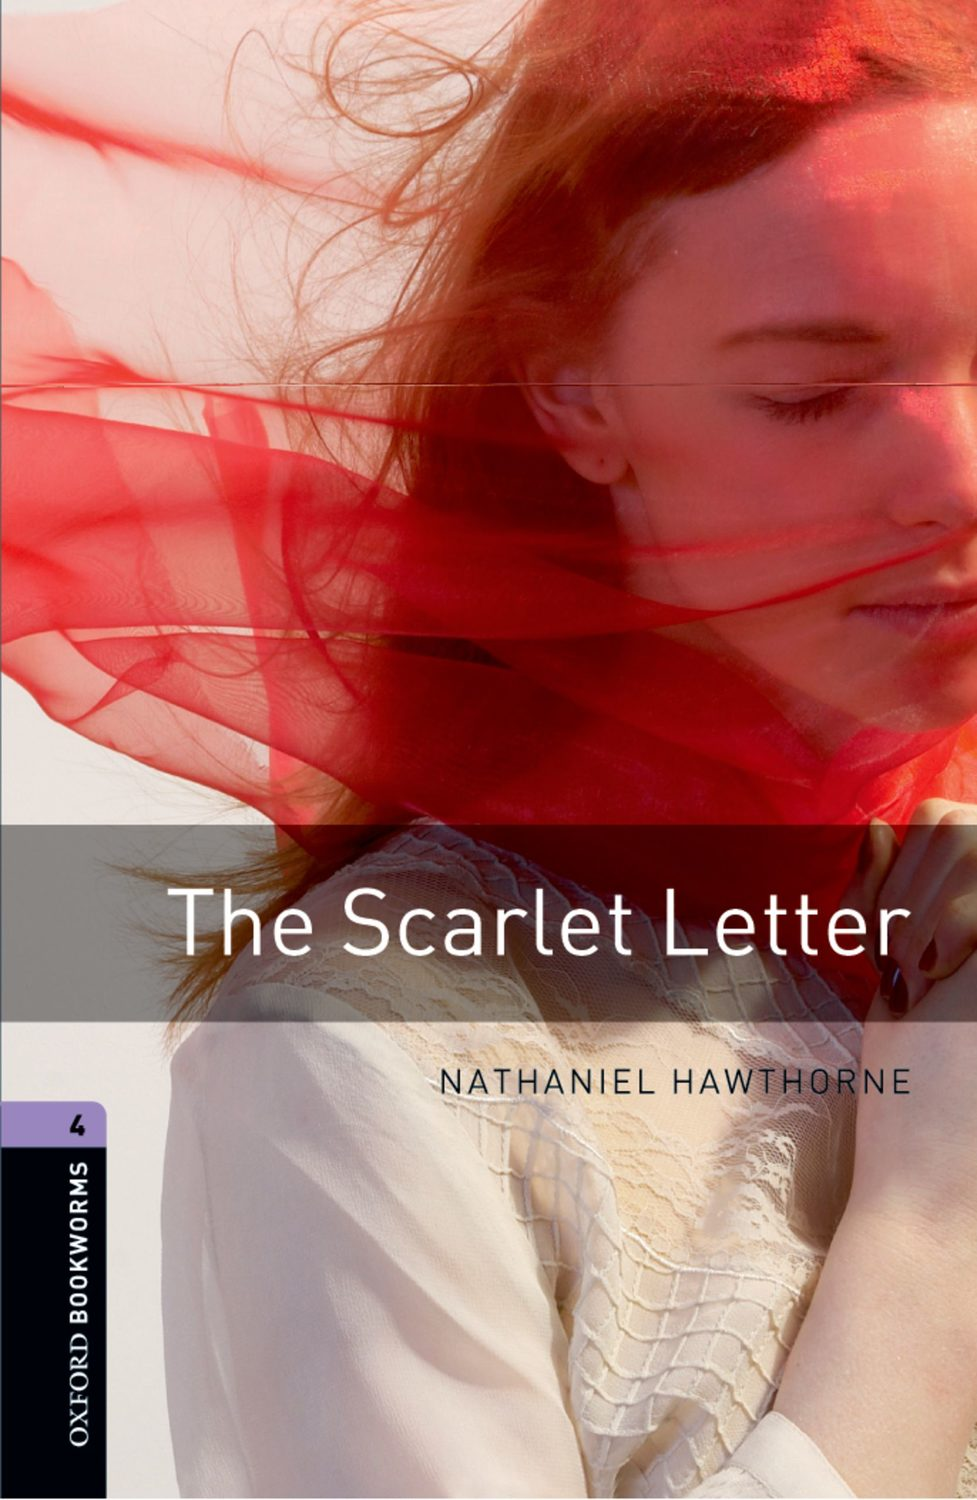 negative and positive effects of peer pressure an analysis of nathaniel hawthornes the scarlet lette